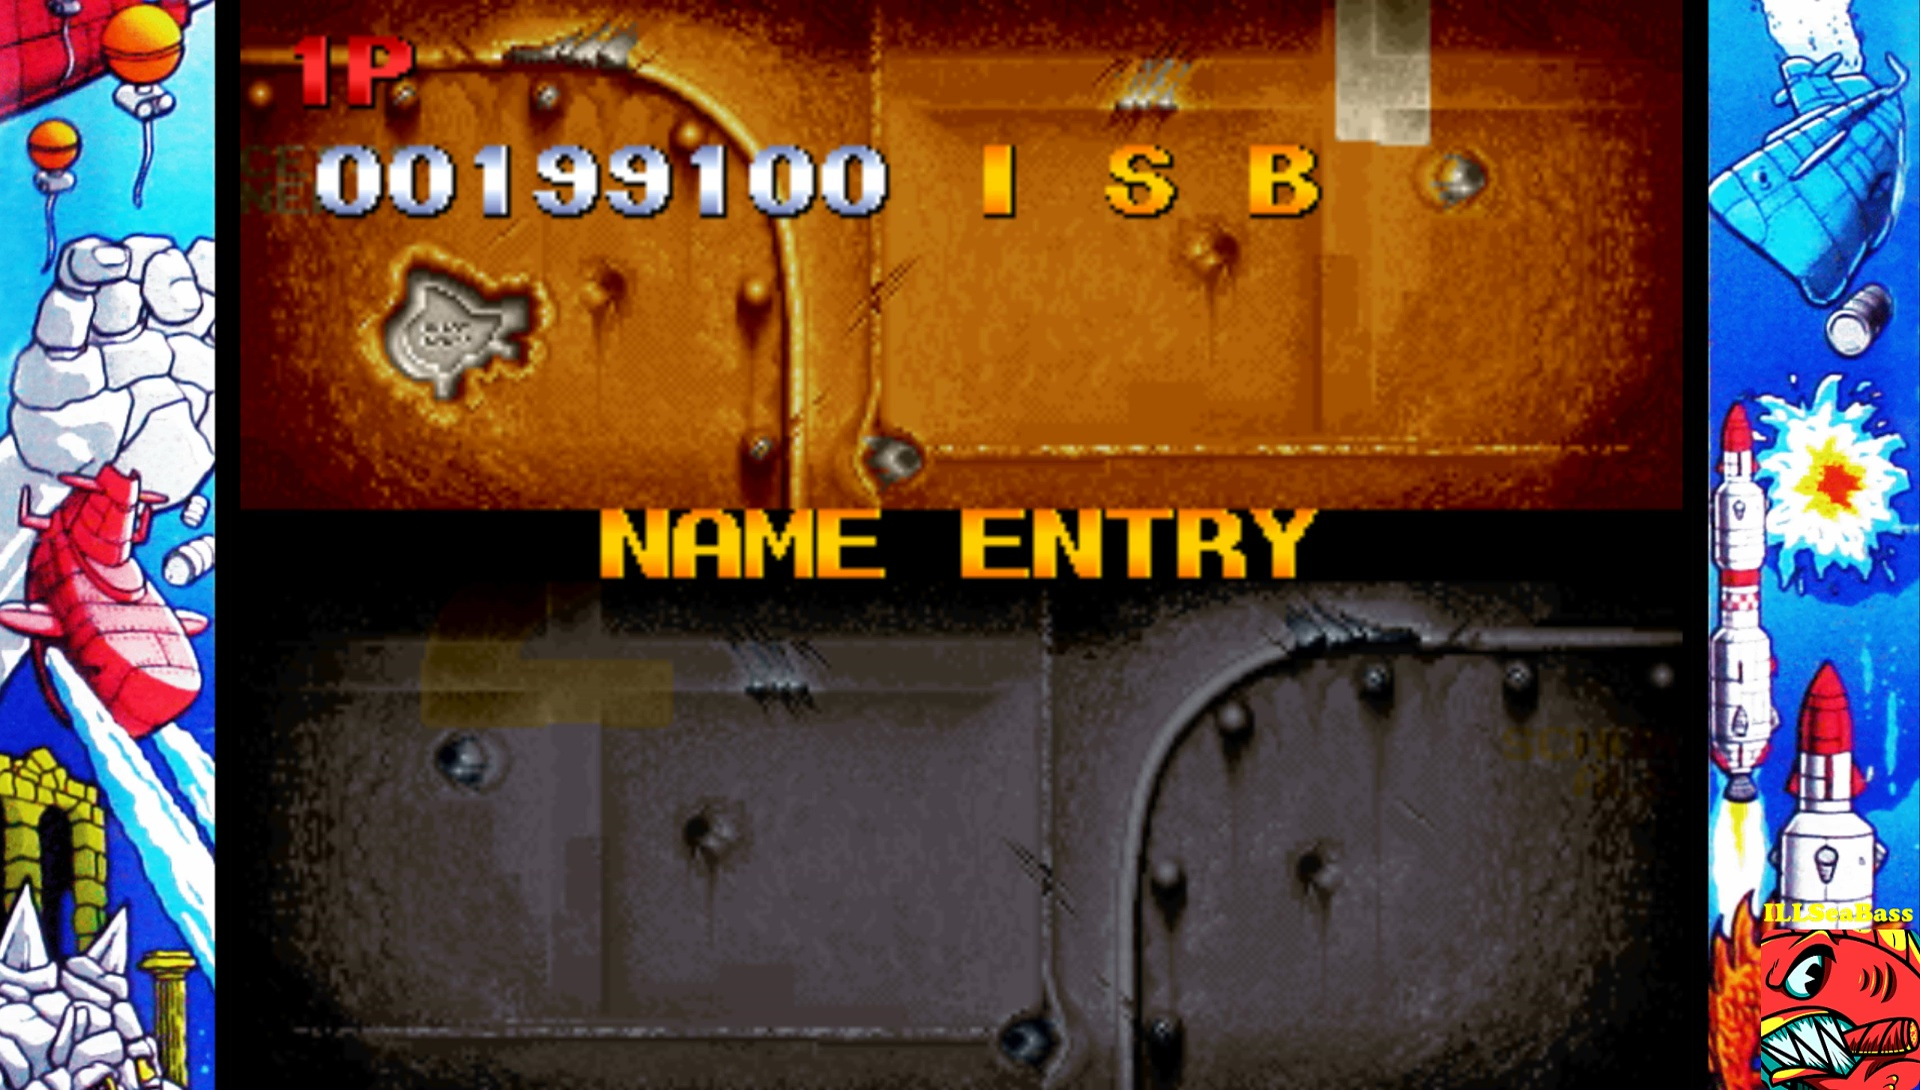 ILLSeaBass: In The Hunt [inthunt] (Arcade Emulated / M.A.M.E.) 199,100 points on 2017-02-11 23:31:51